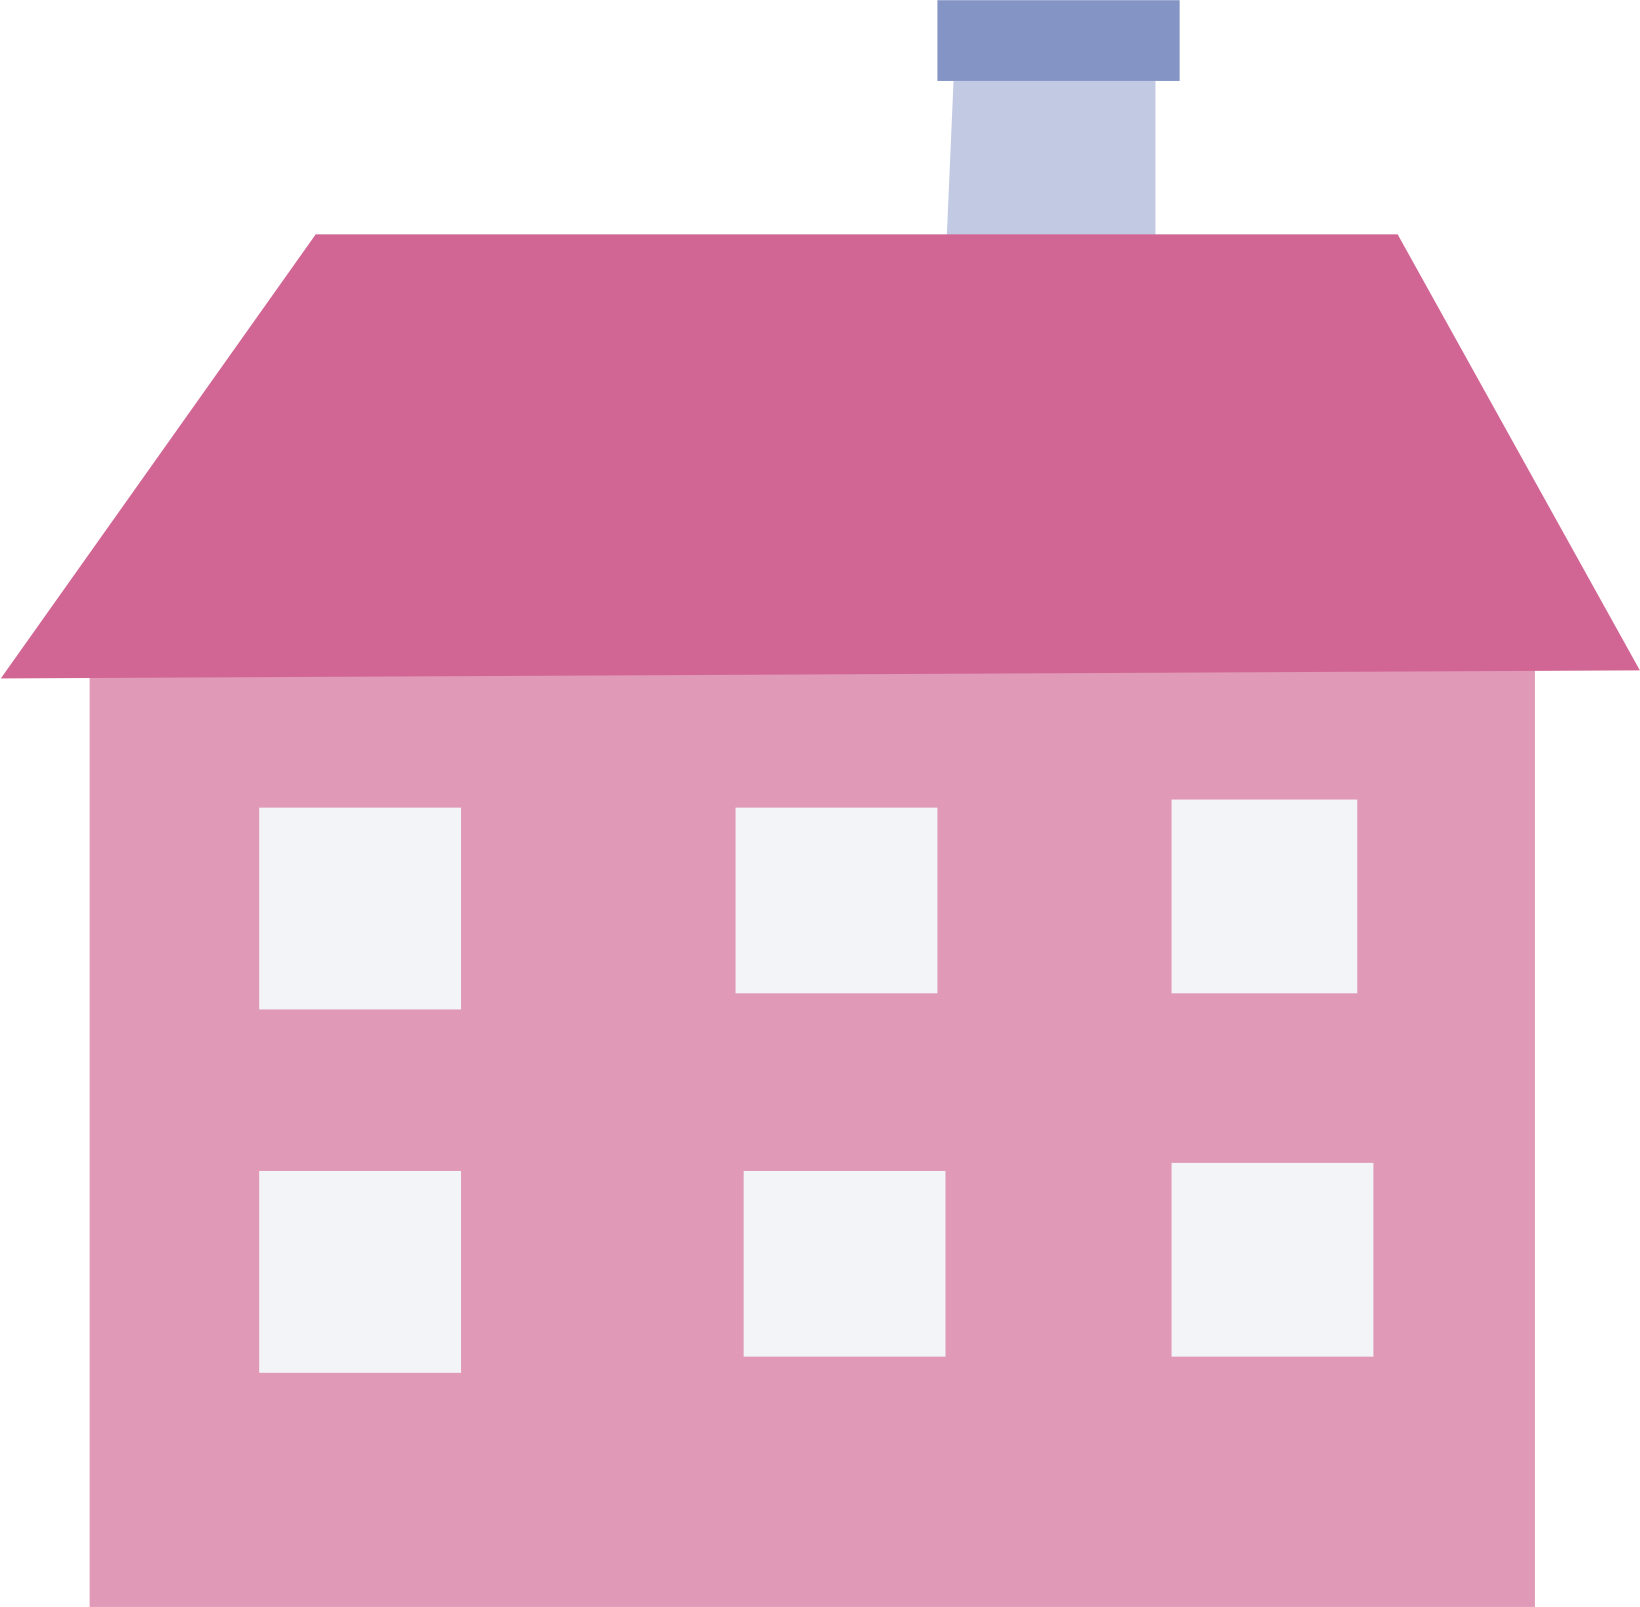 Clipart big image. Pink house png